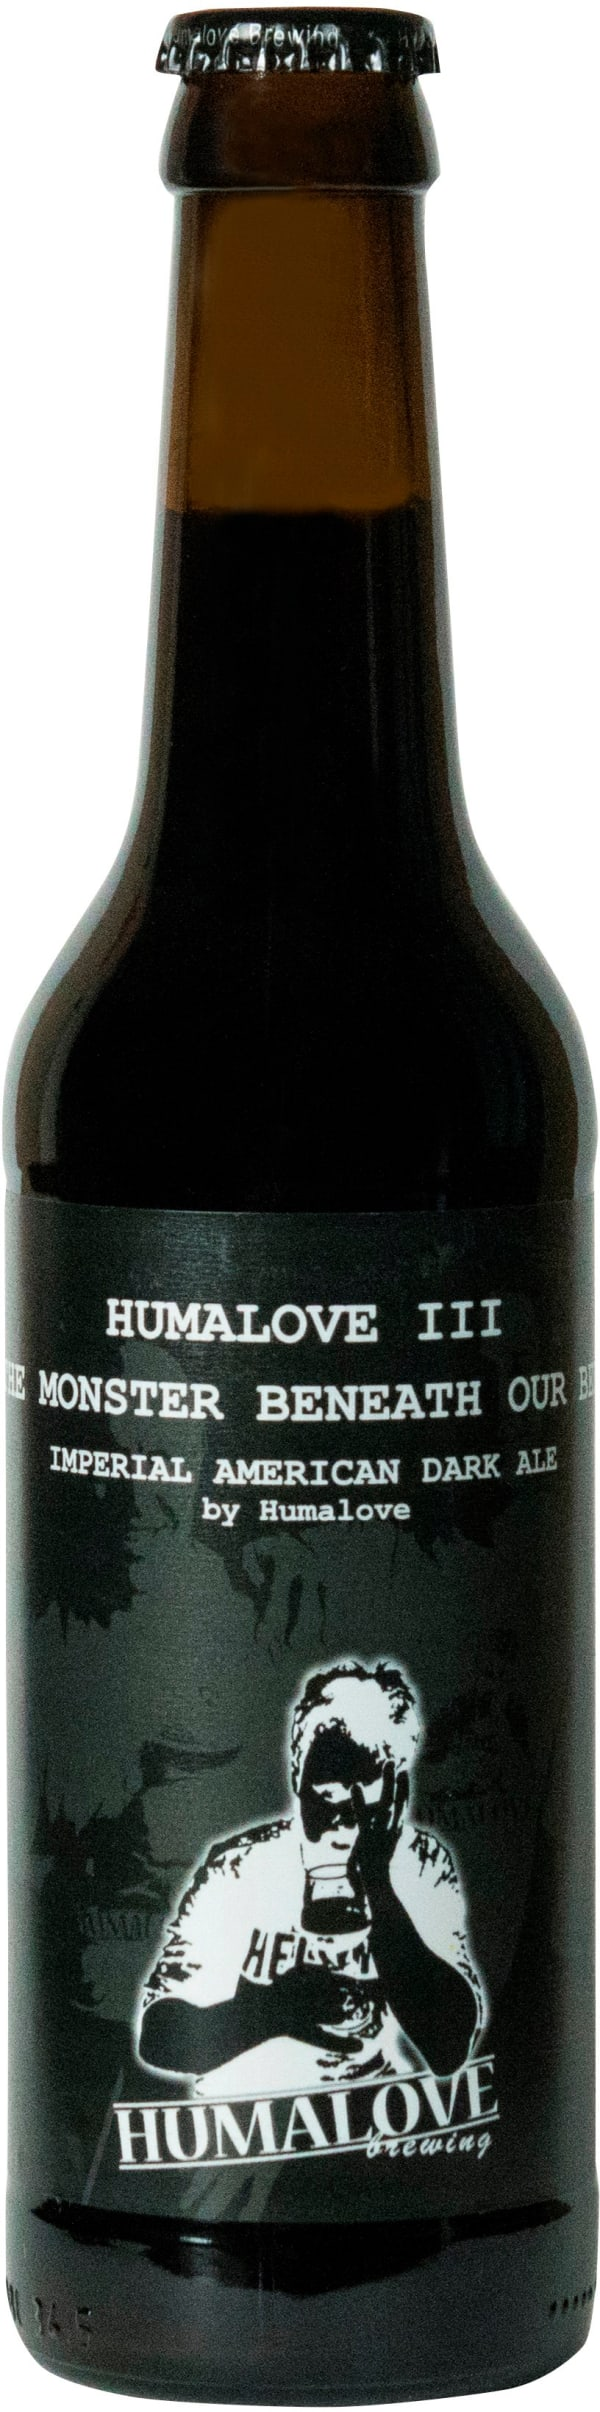 Humalove III The Monster Beneath Our Bed